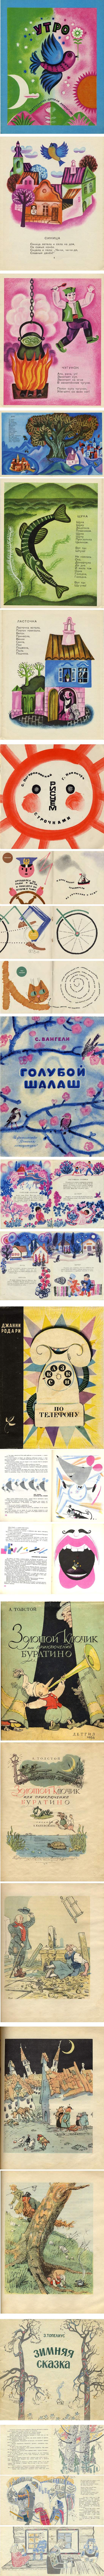 russian illustrations